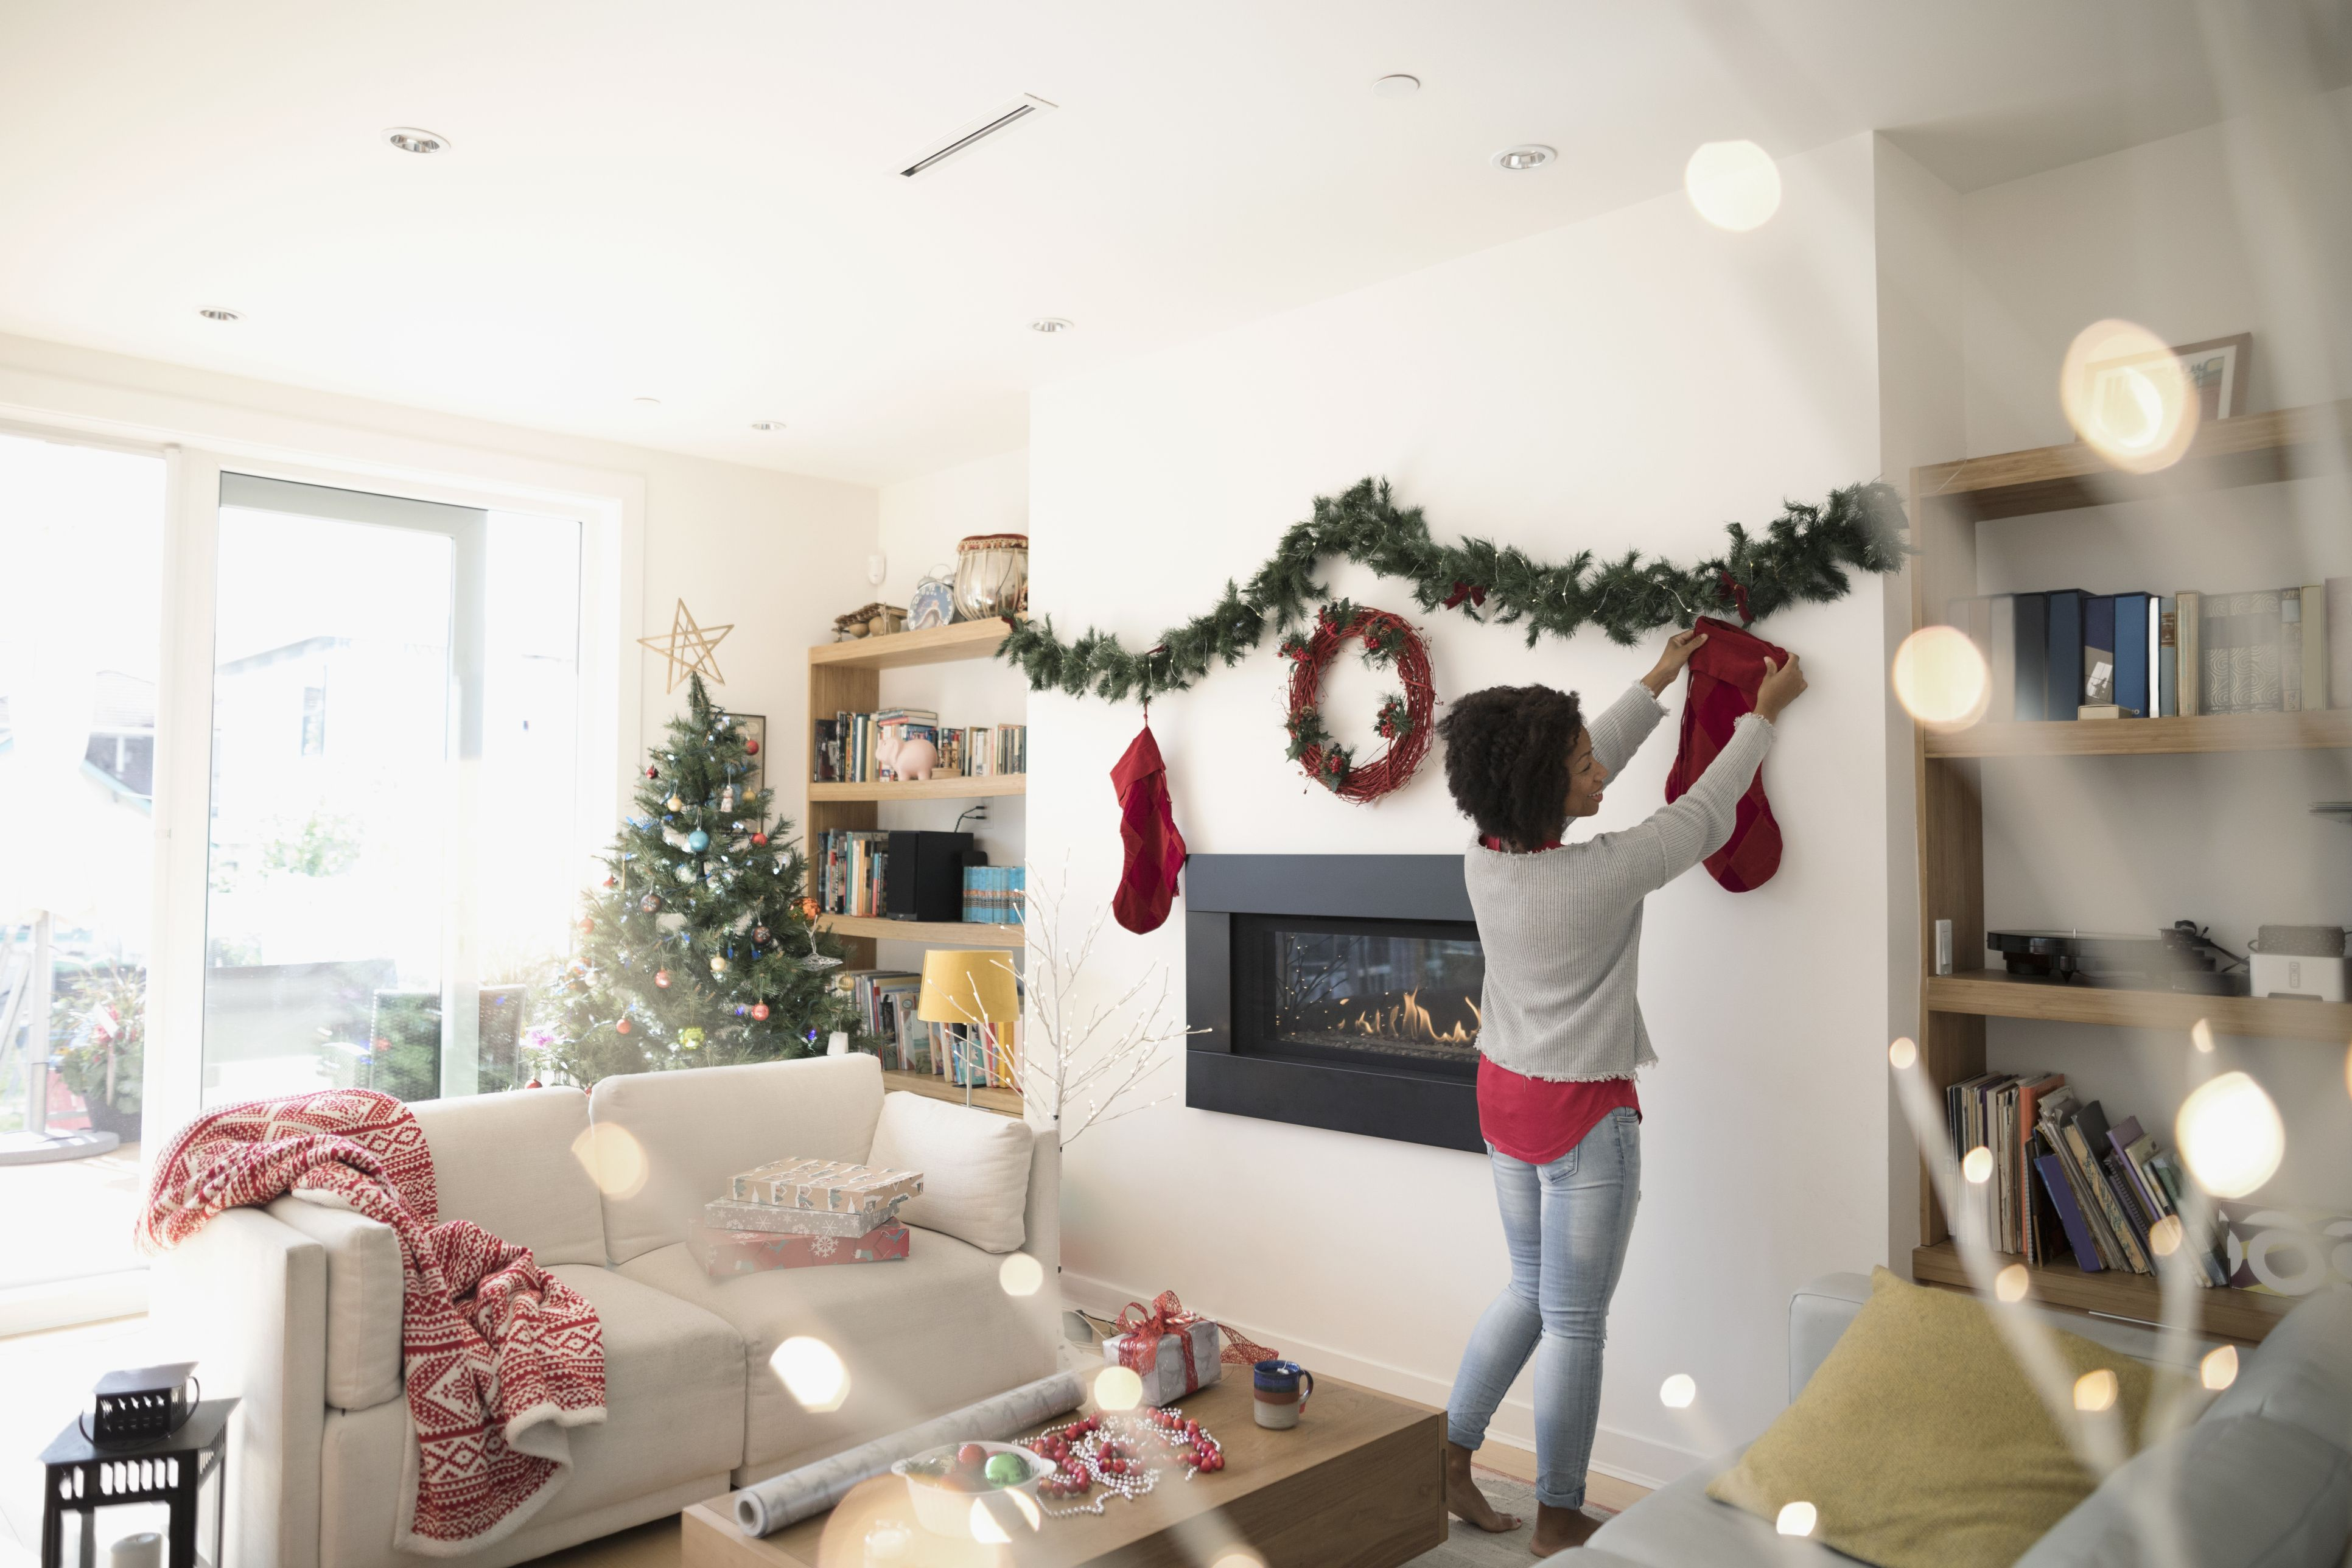 18 Christmas Decorating Hacks That Will Make Your Holiday So Much Easier